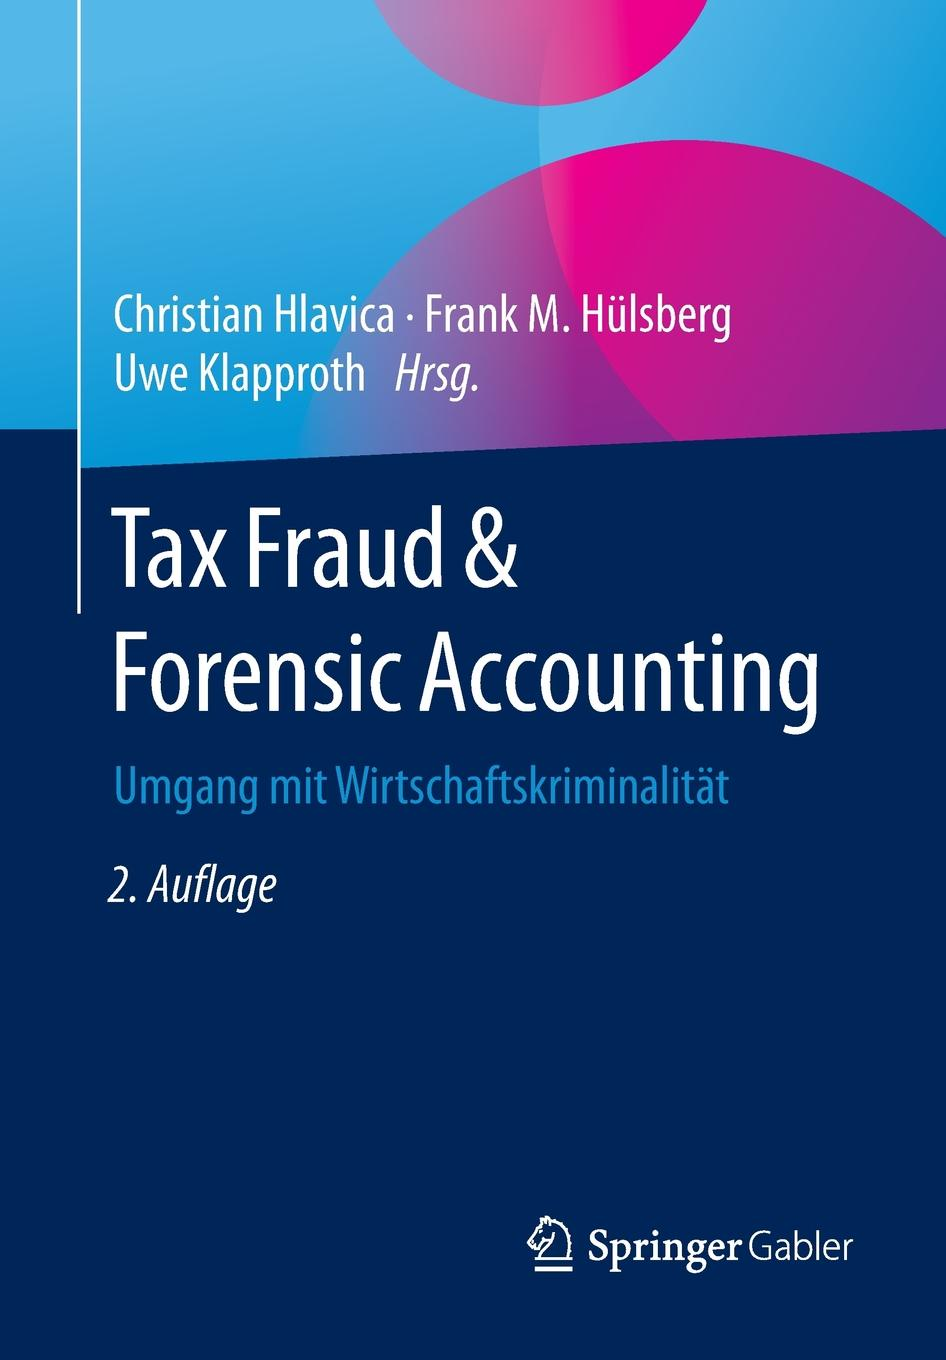 Tax Fraud & Forensic Accounting. Umgang mit Wirtschaftskriminalitat zabihollah rezaee forensic accounting and financial statement fraud volume i fundamentals of forensic accounting